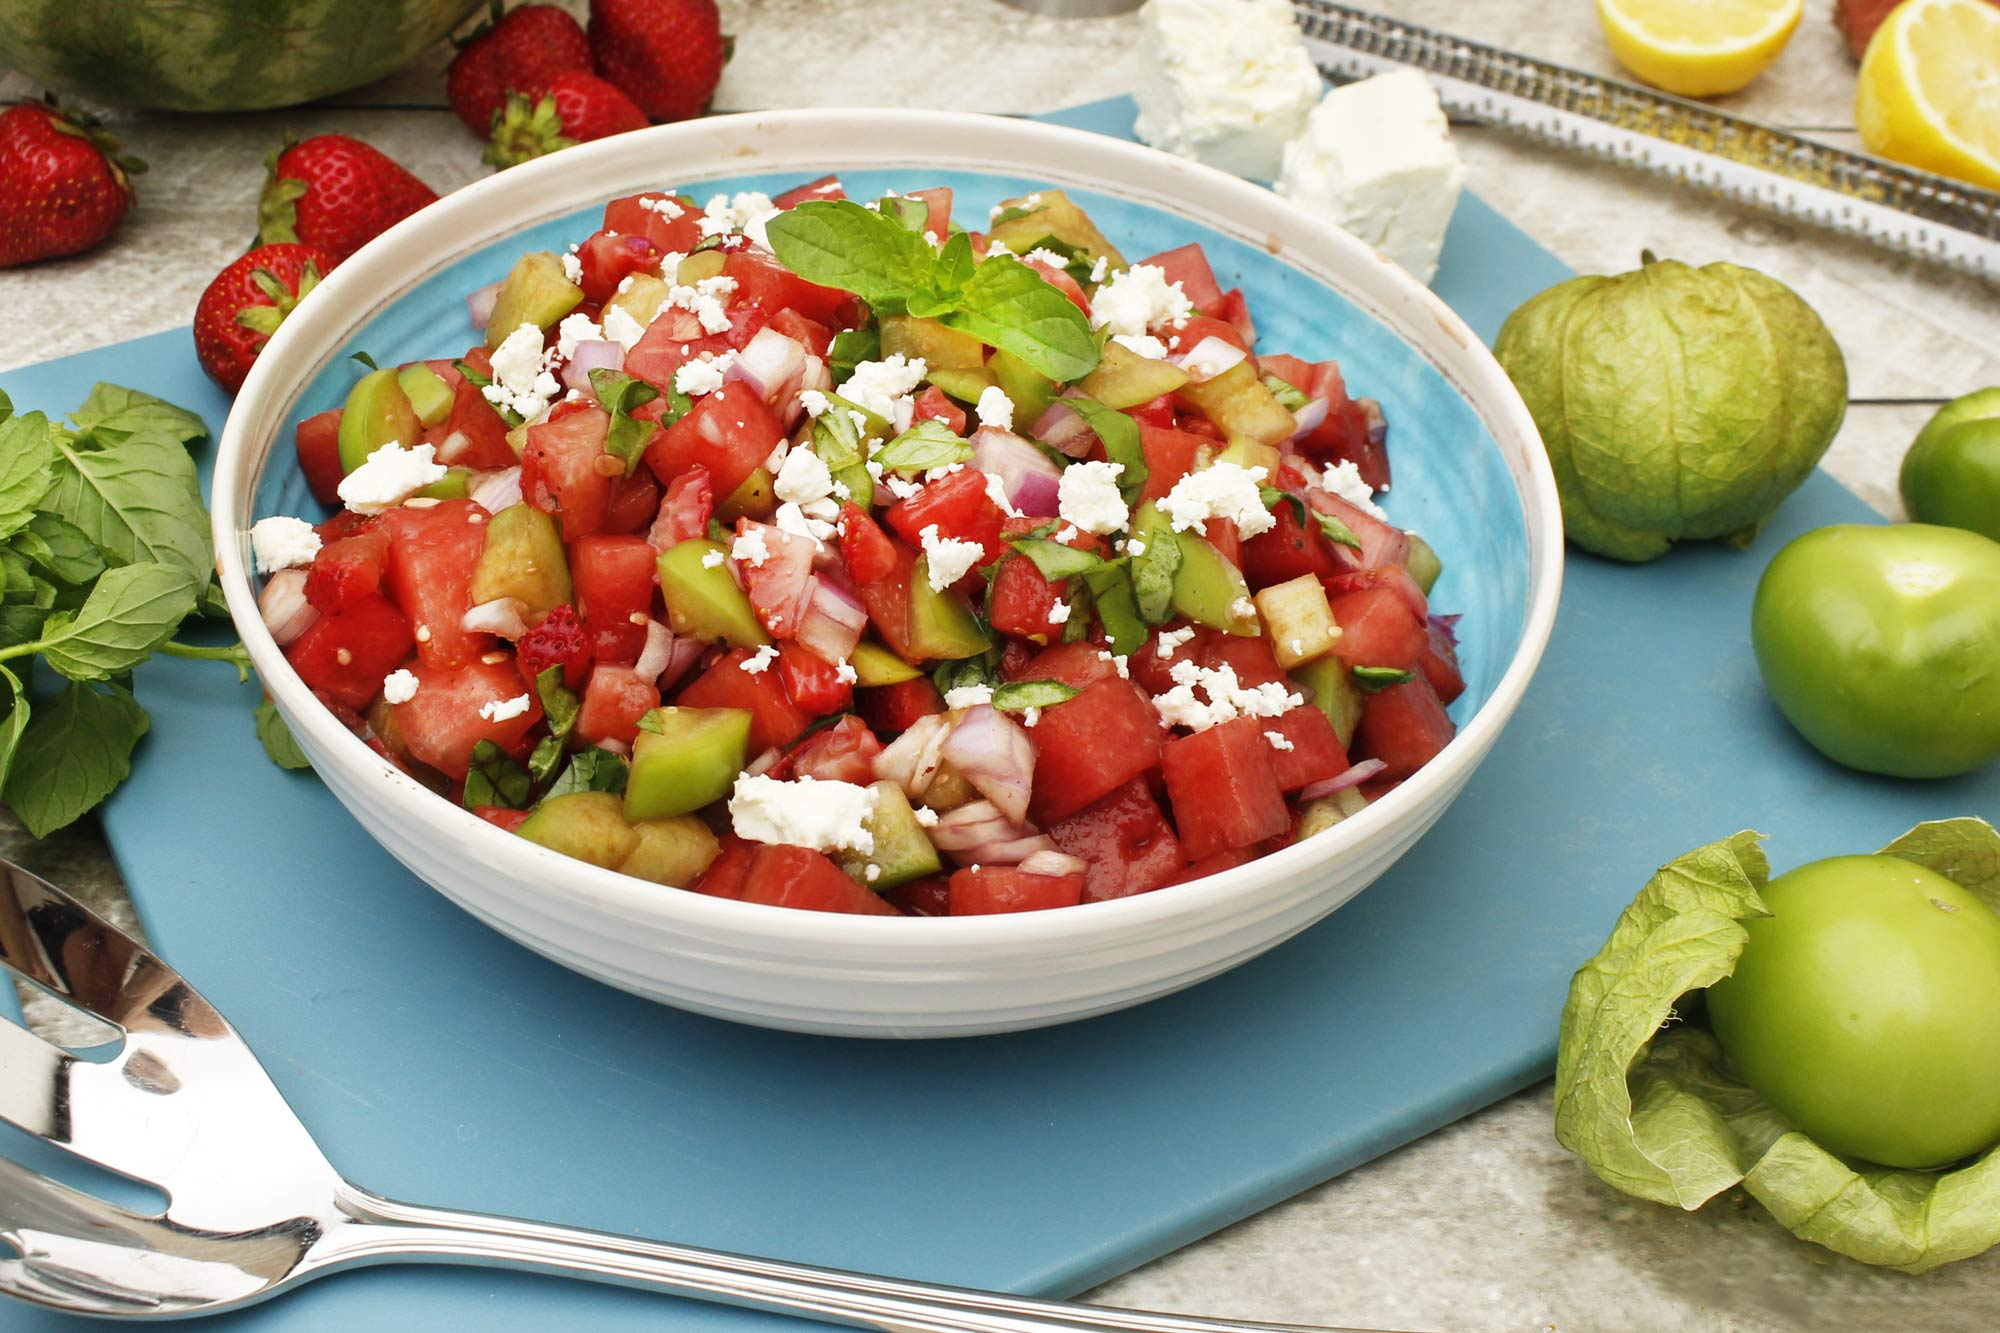 Tomatillo Salad with Watermelon and Strawberry